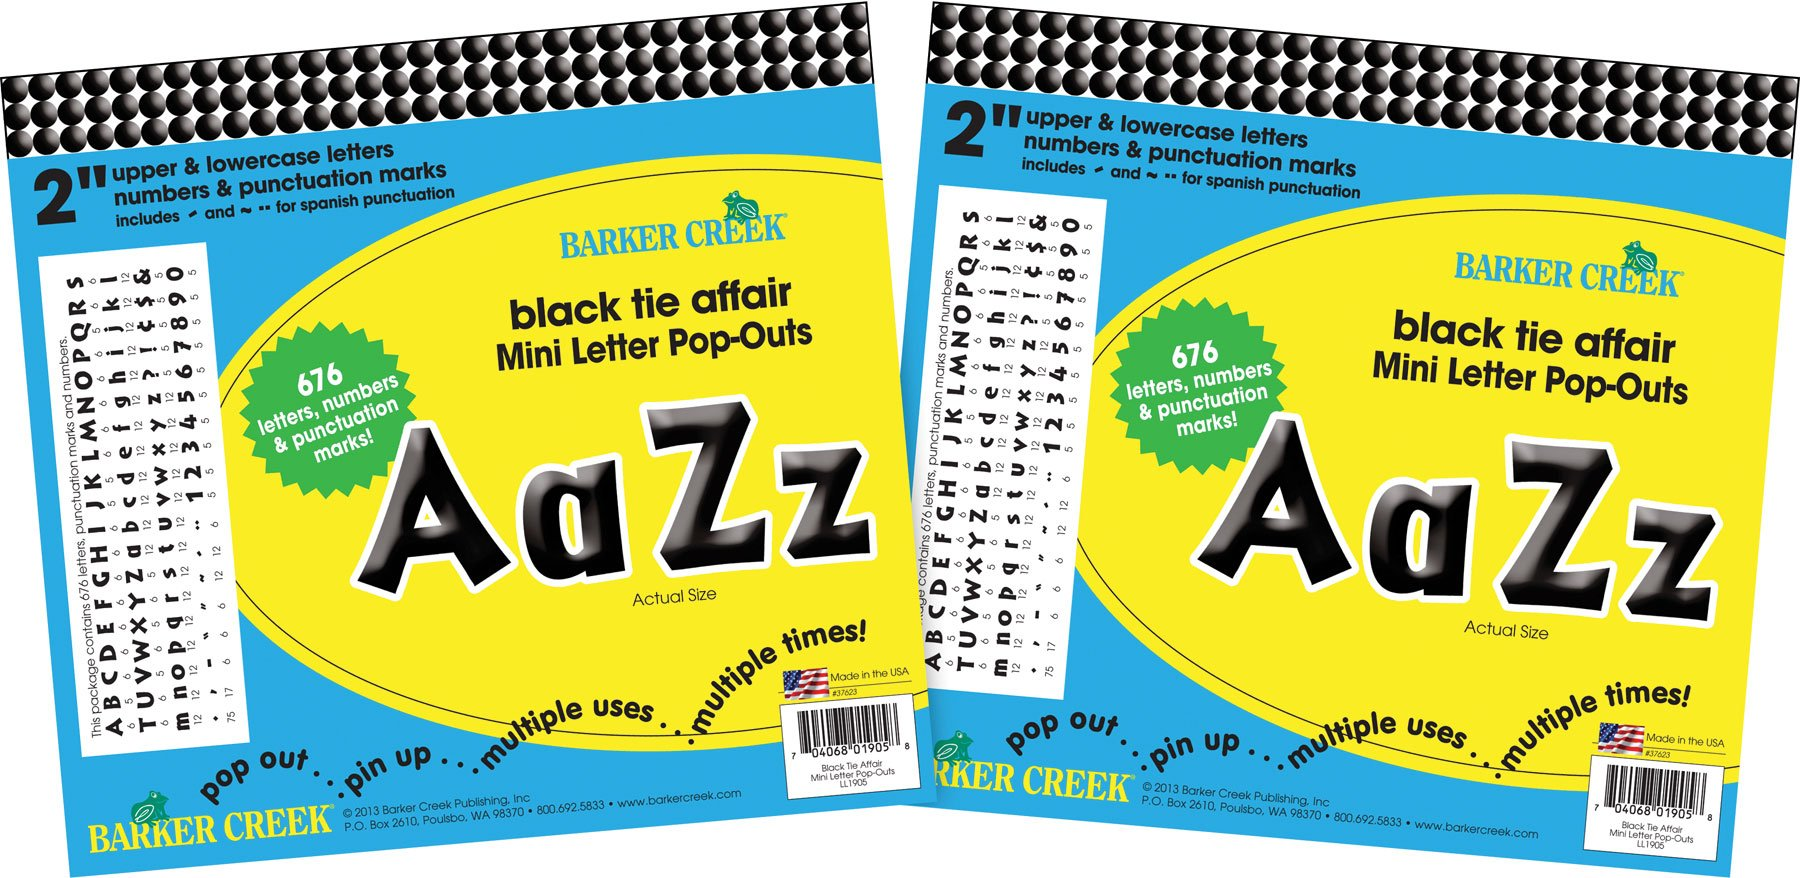 Barker Creek 2'' Letter Pop-Outs 2 Pack - Black Tie Affair (BC3654) by BARKER CREEK